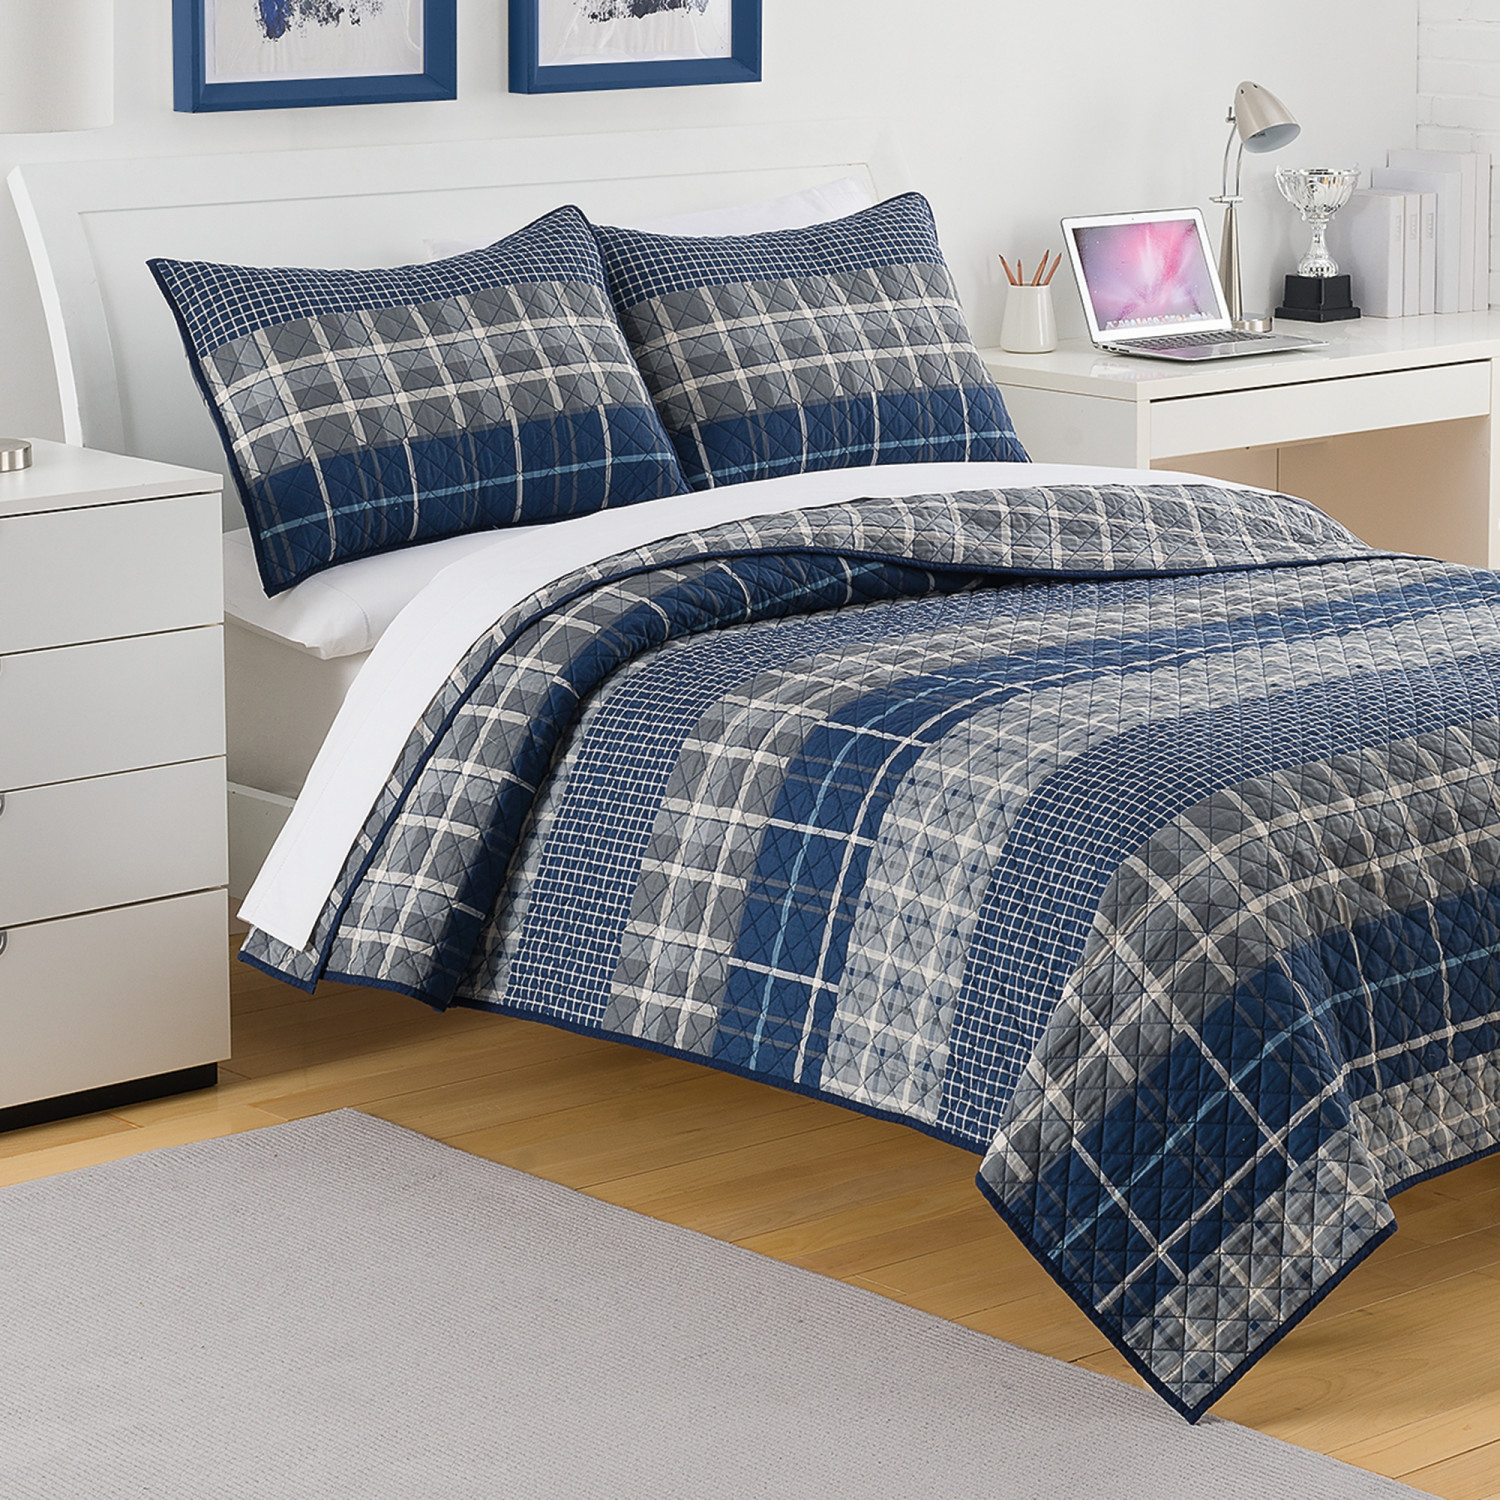 Queen Size Bedding Plaid Boys